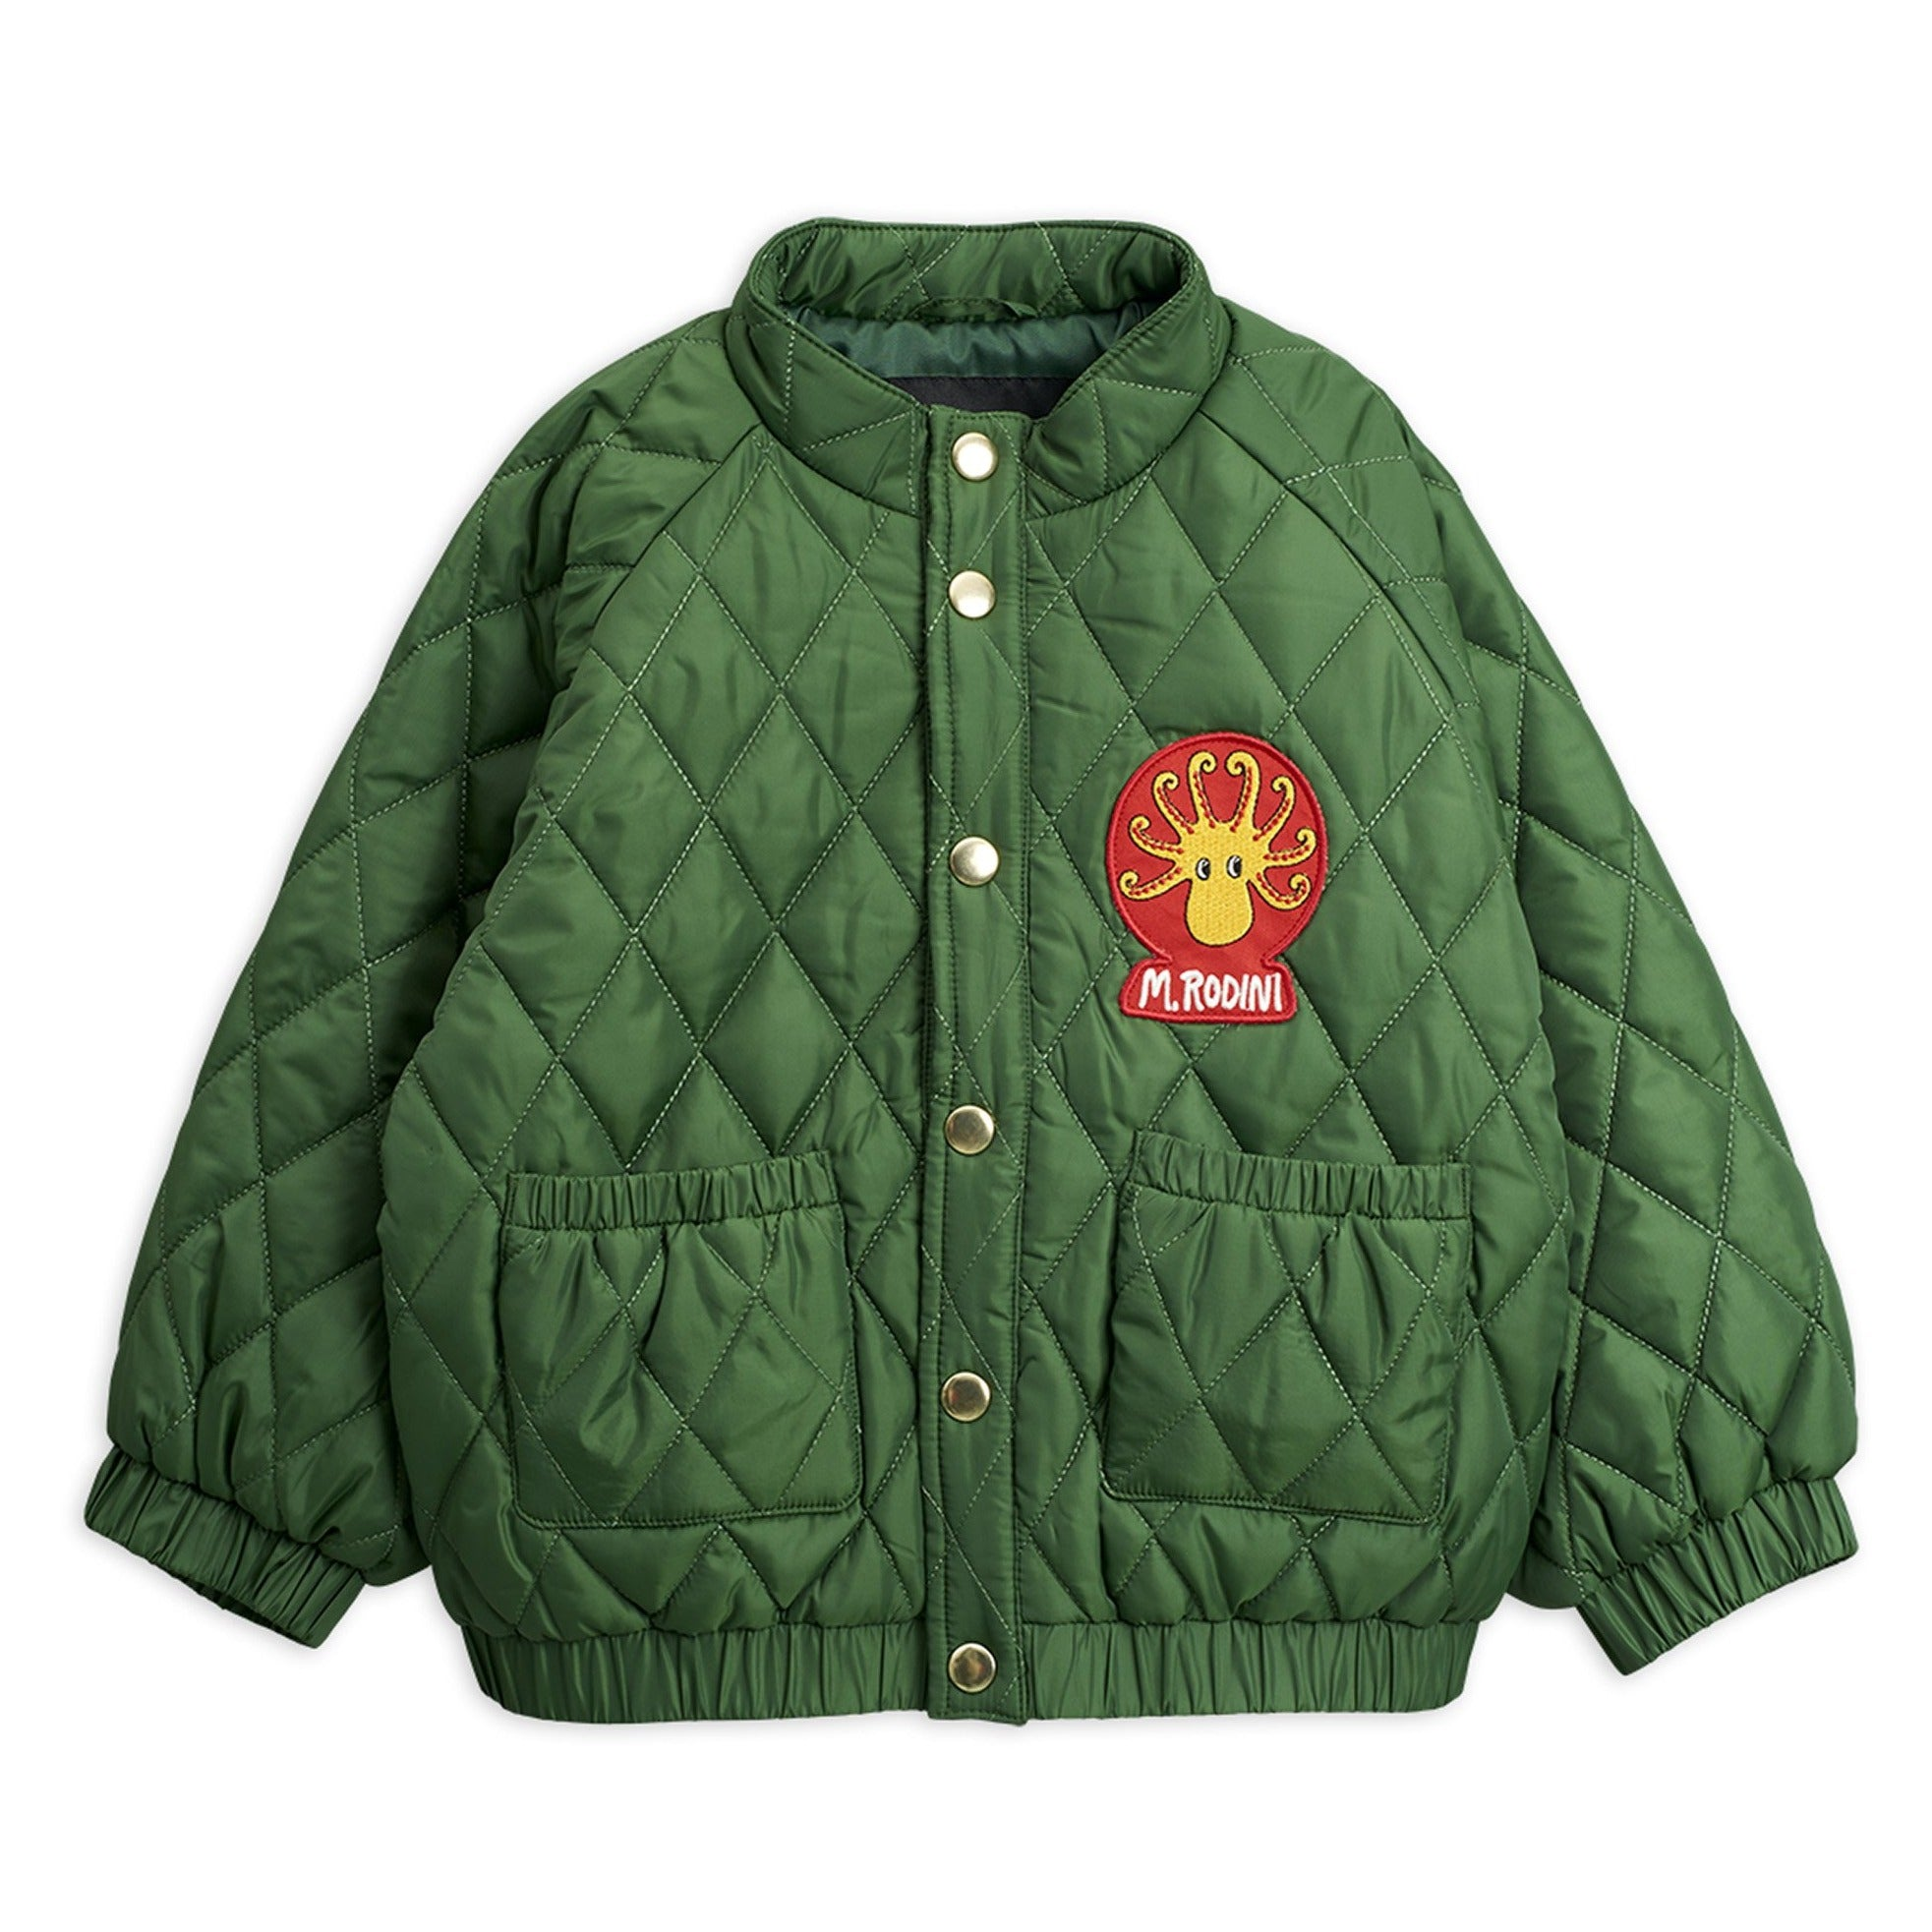 Mini Rodini diamond quilted takki, dark green